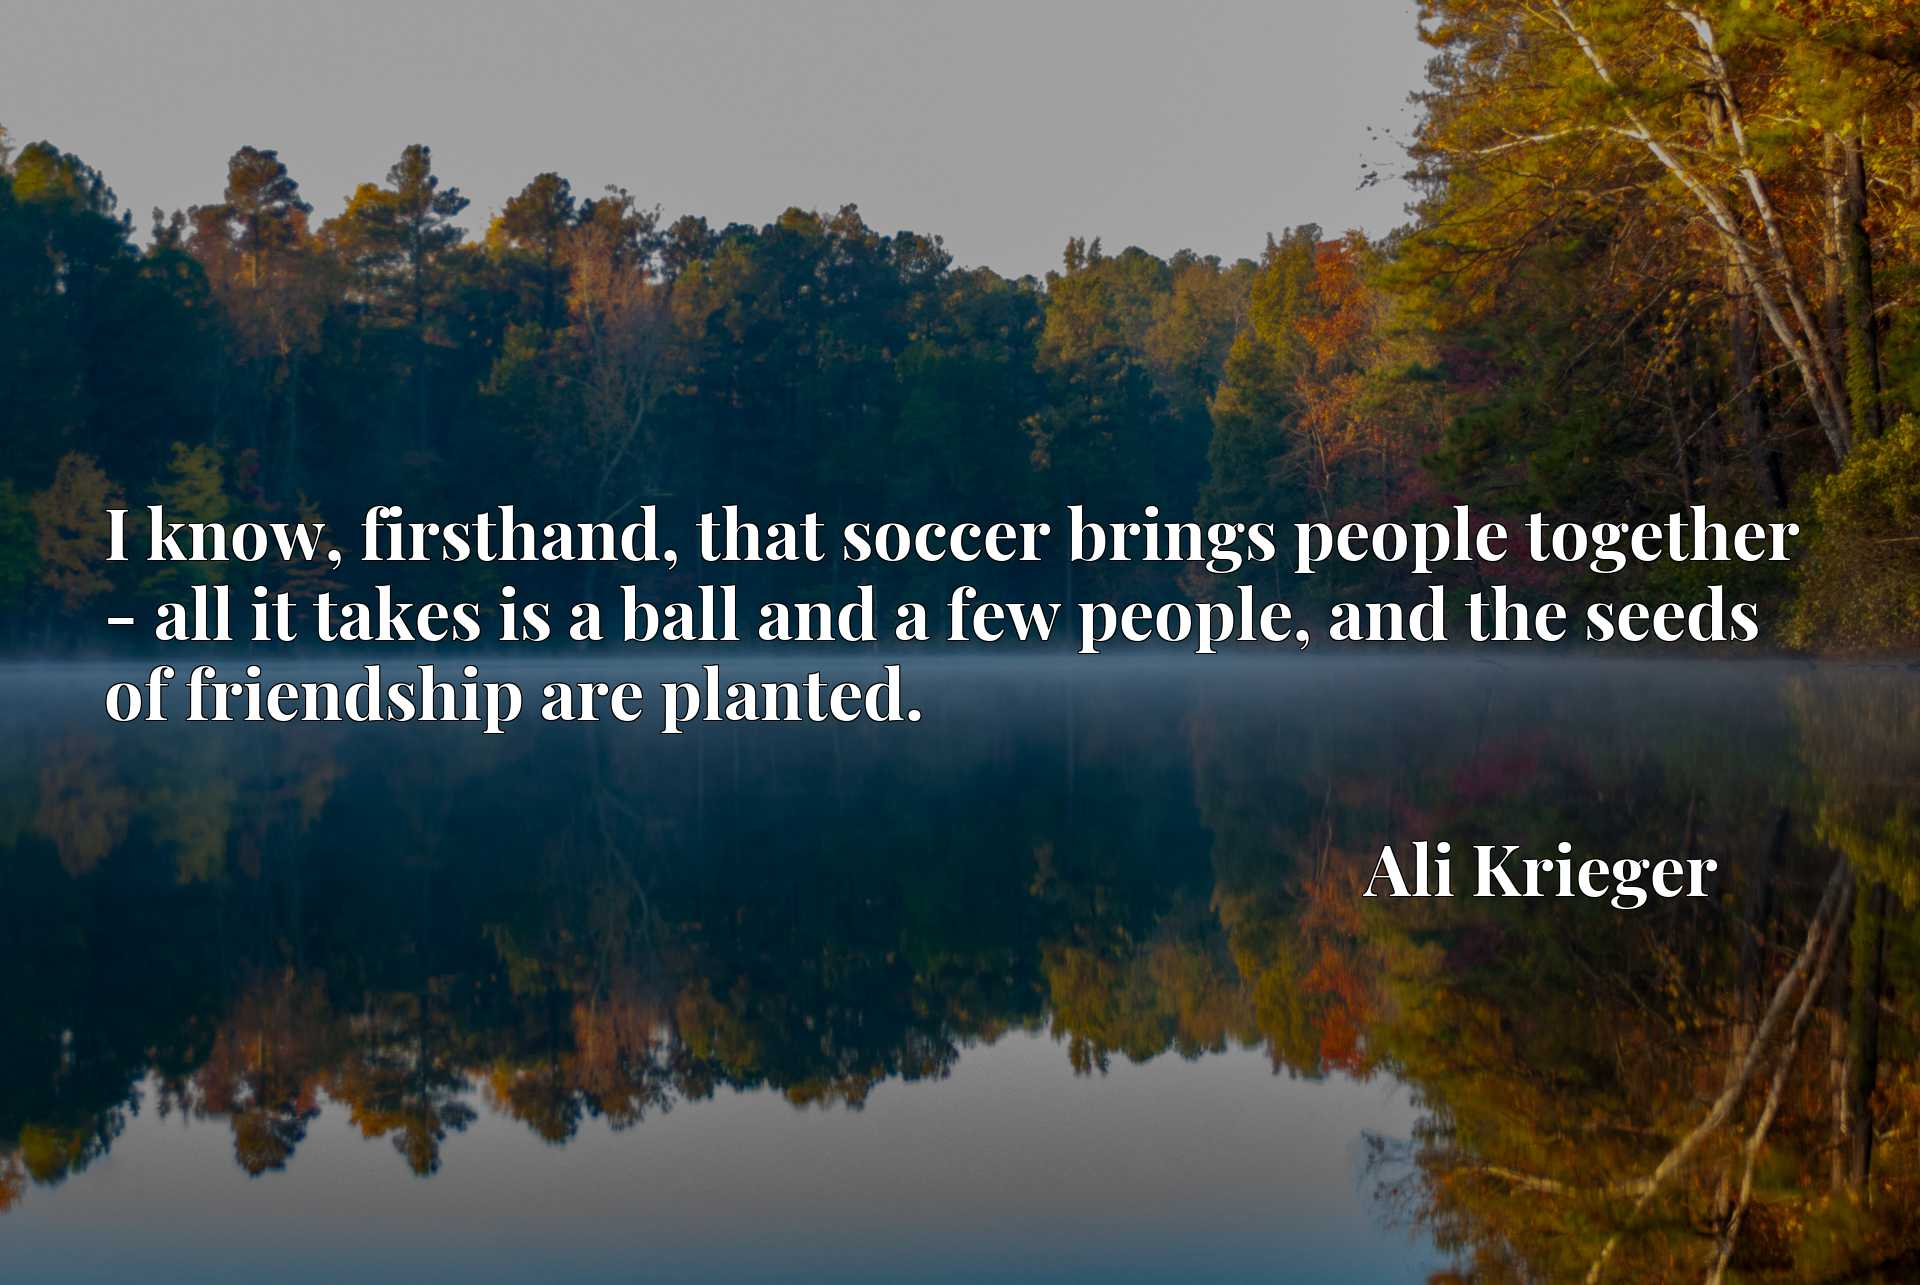 I know, firsthand, that soccer brings people together - all it takes is a ball and a few people, and the seeds of friendship are planted.